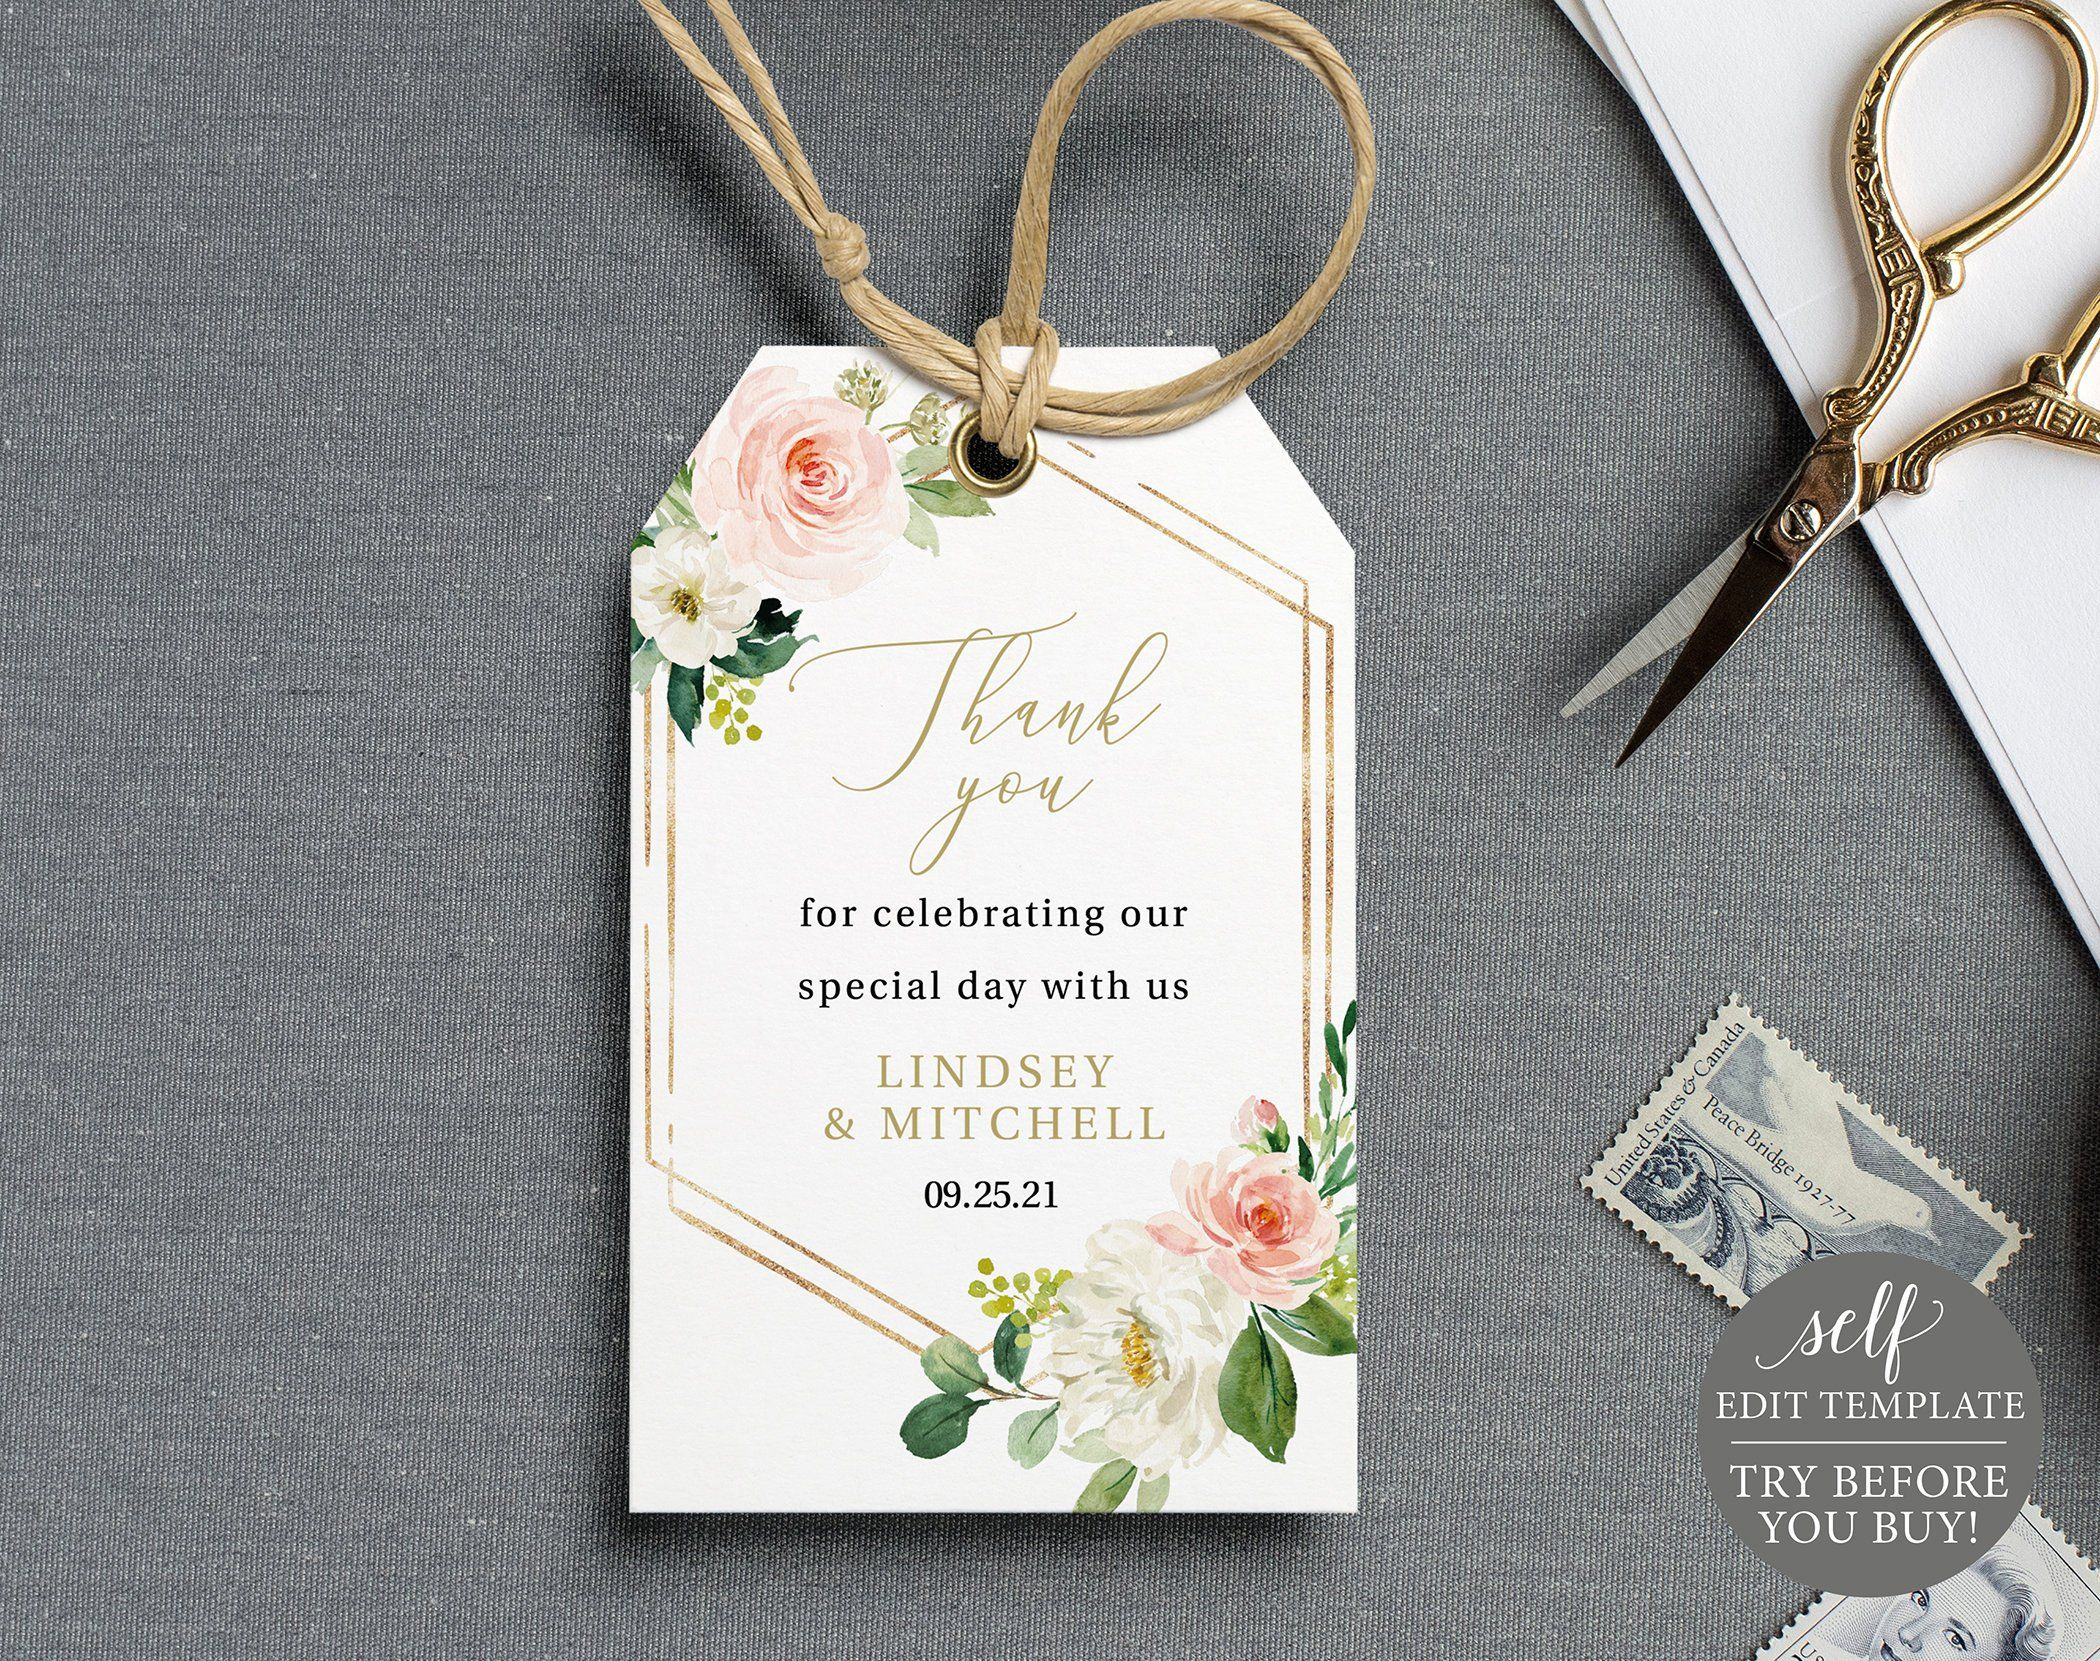 Editable Text Rustic Party Favor Tag Template Cute INSTANT DOWNLOAD Garden Wedding Blush Greenery Florals Wedding Decor Pastels